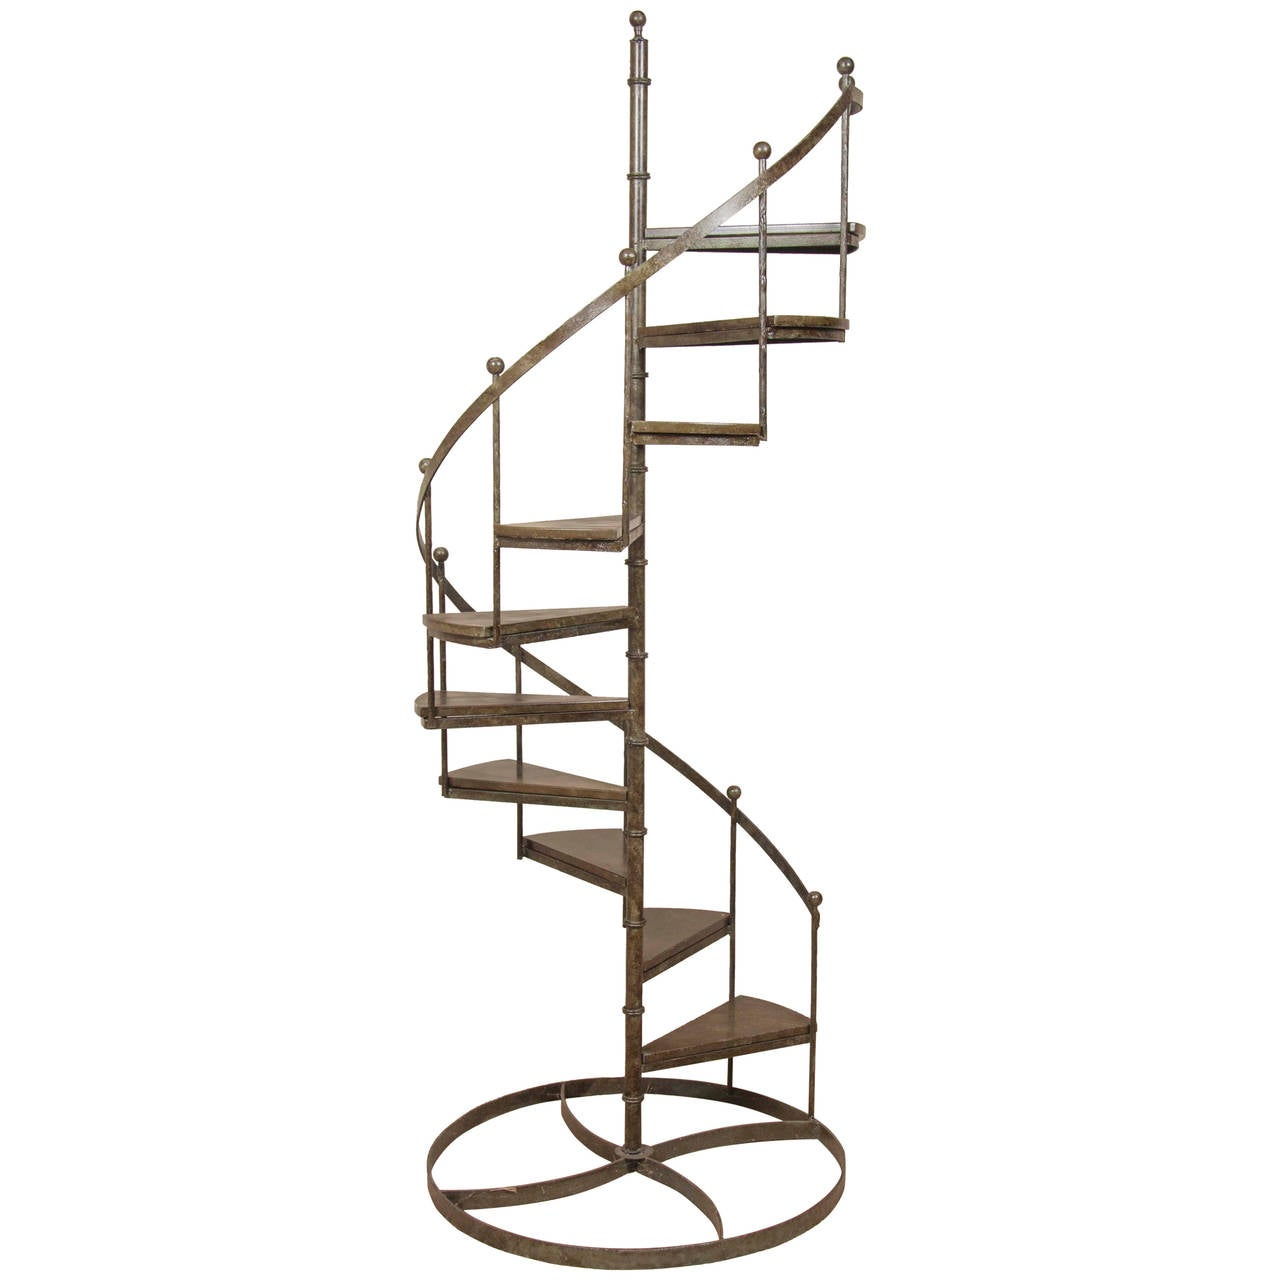 Circular wrought iron display staircase at 1stdibs - Spiral staircase wrought iron ...